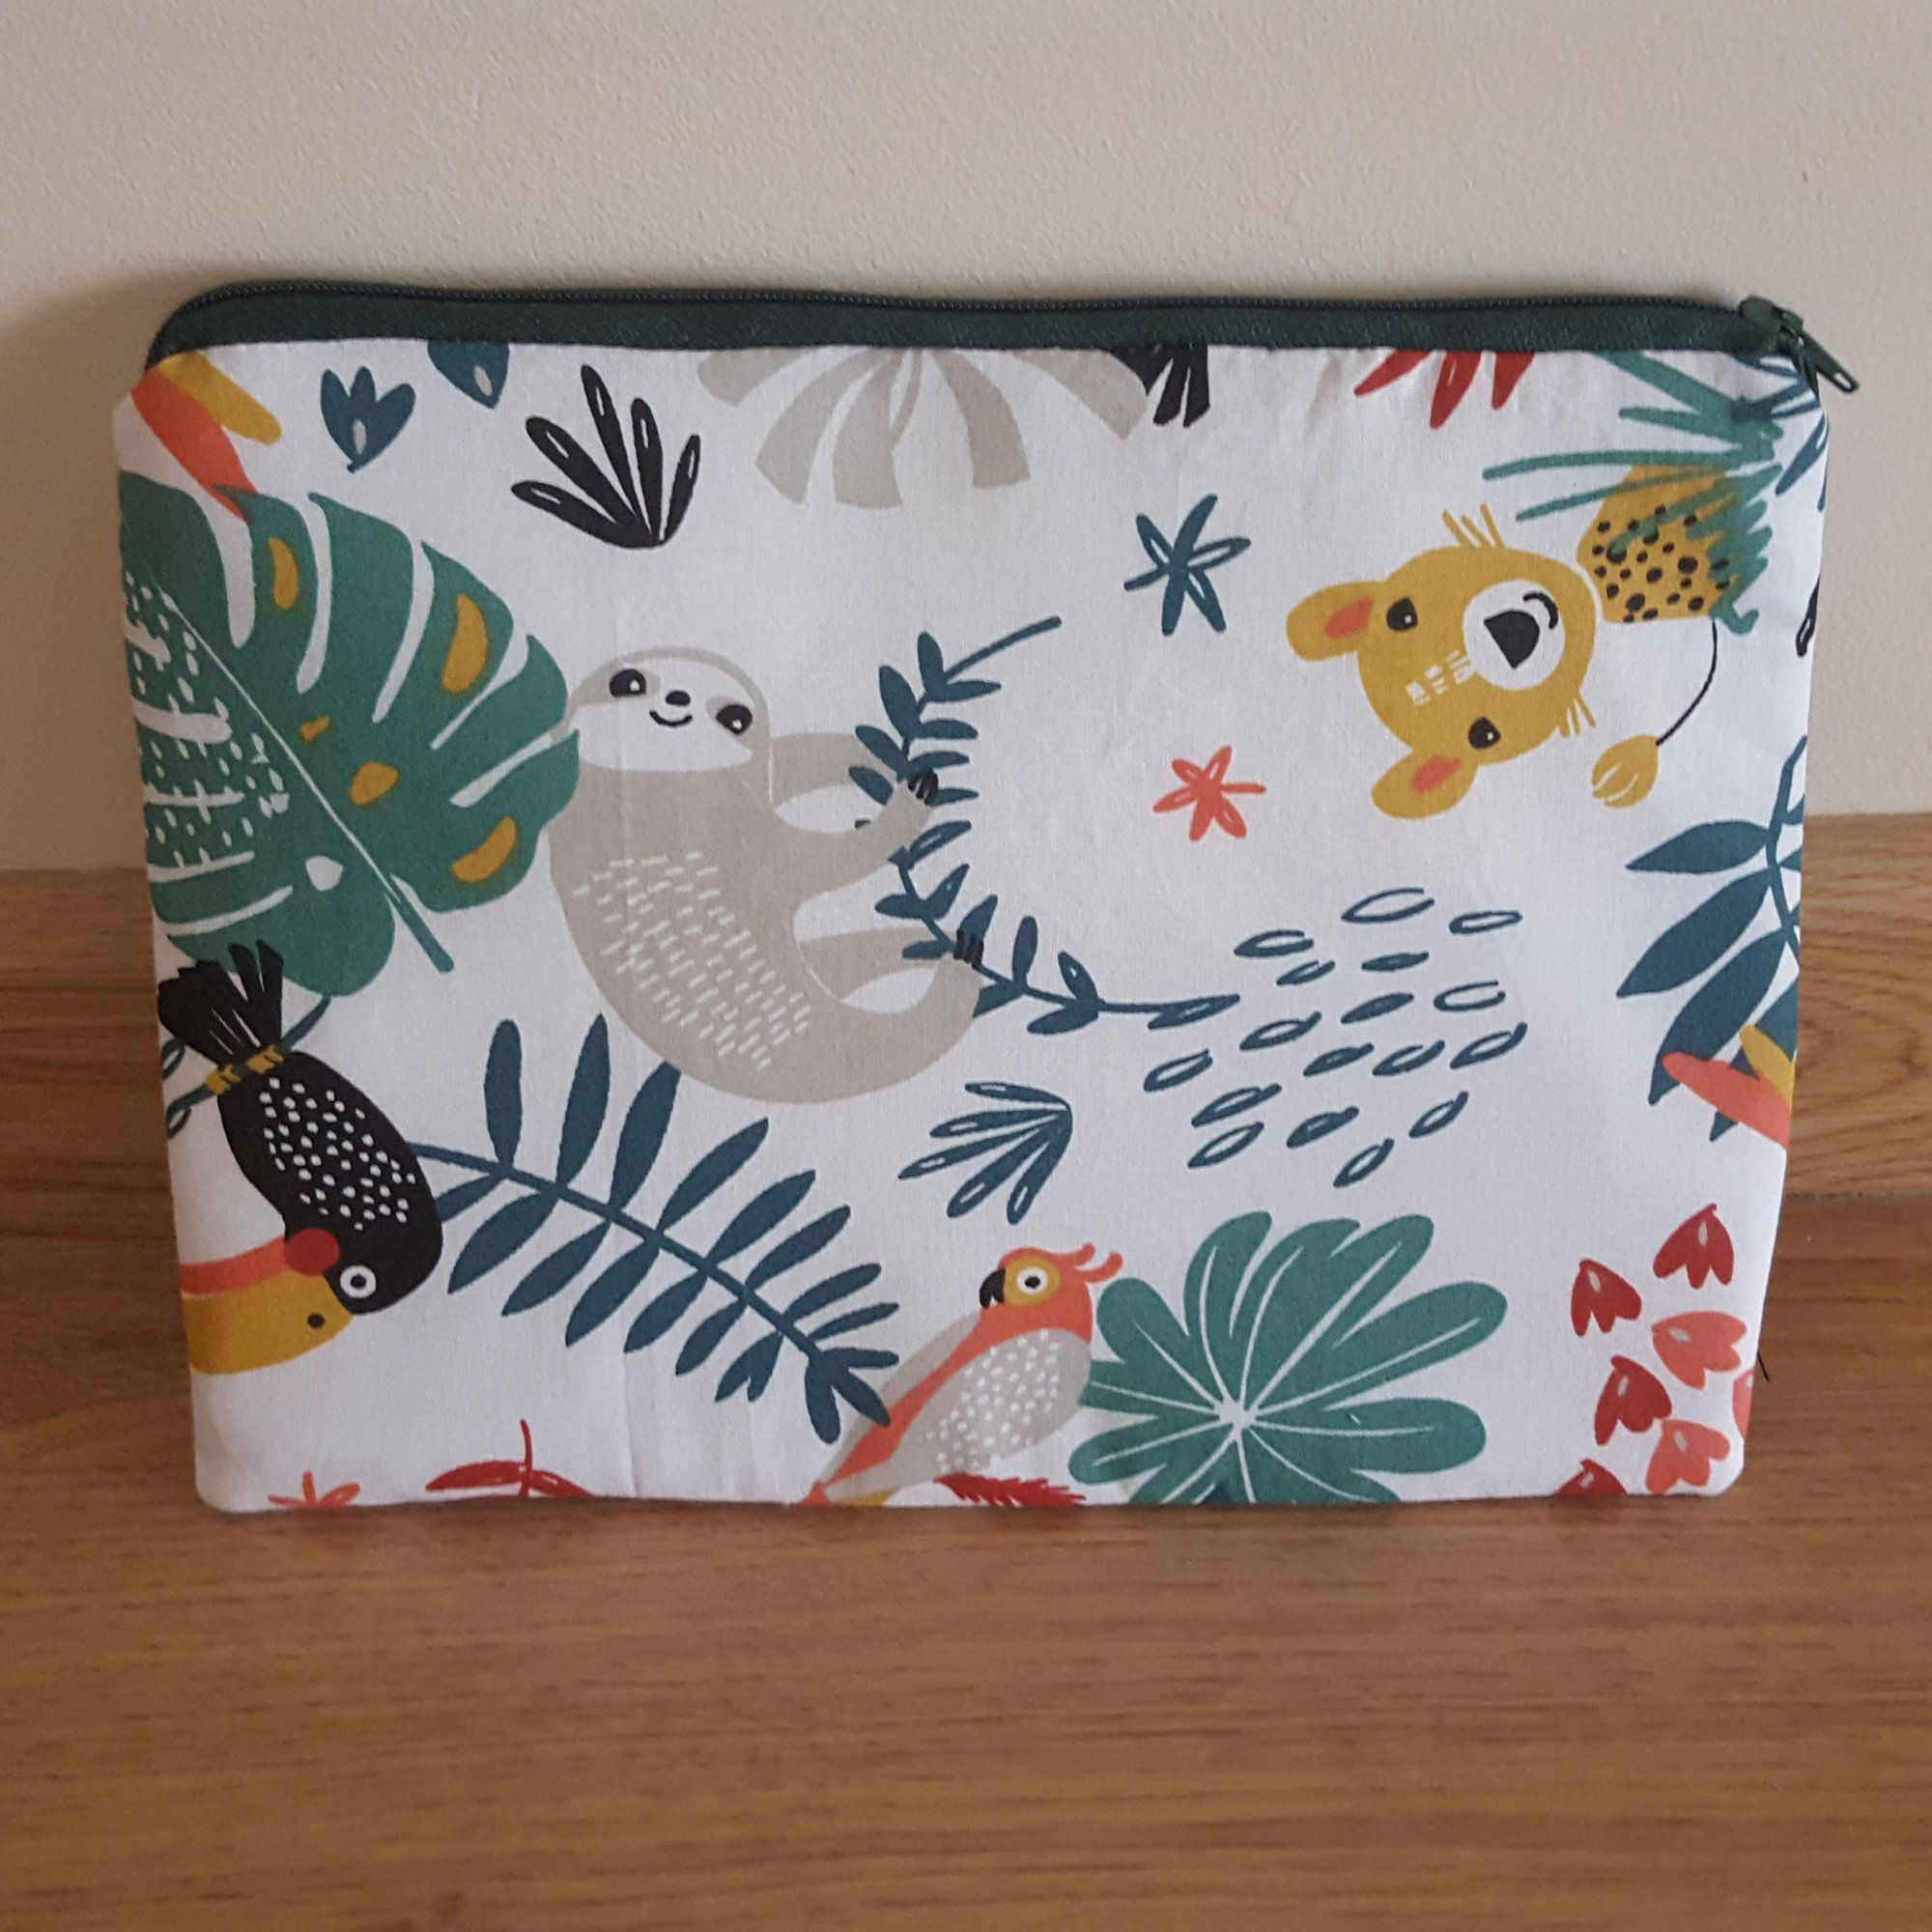 Sloth Zipper Pouch Sloth Purse Tropical Zipper Purse Purse Organiser With Sloths Jungle Pencil Pouch Sloth Gift Sloth Gift Interfacing Sewing Etsy Crafts